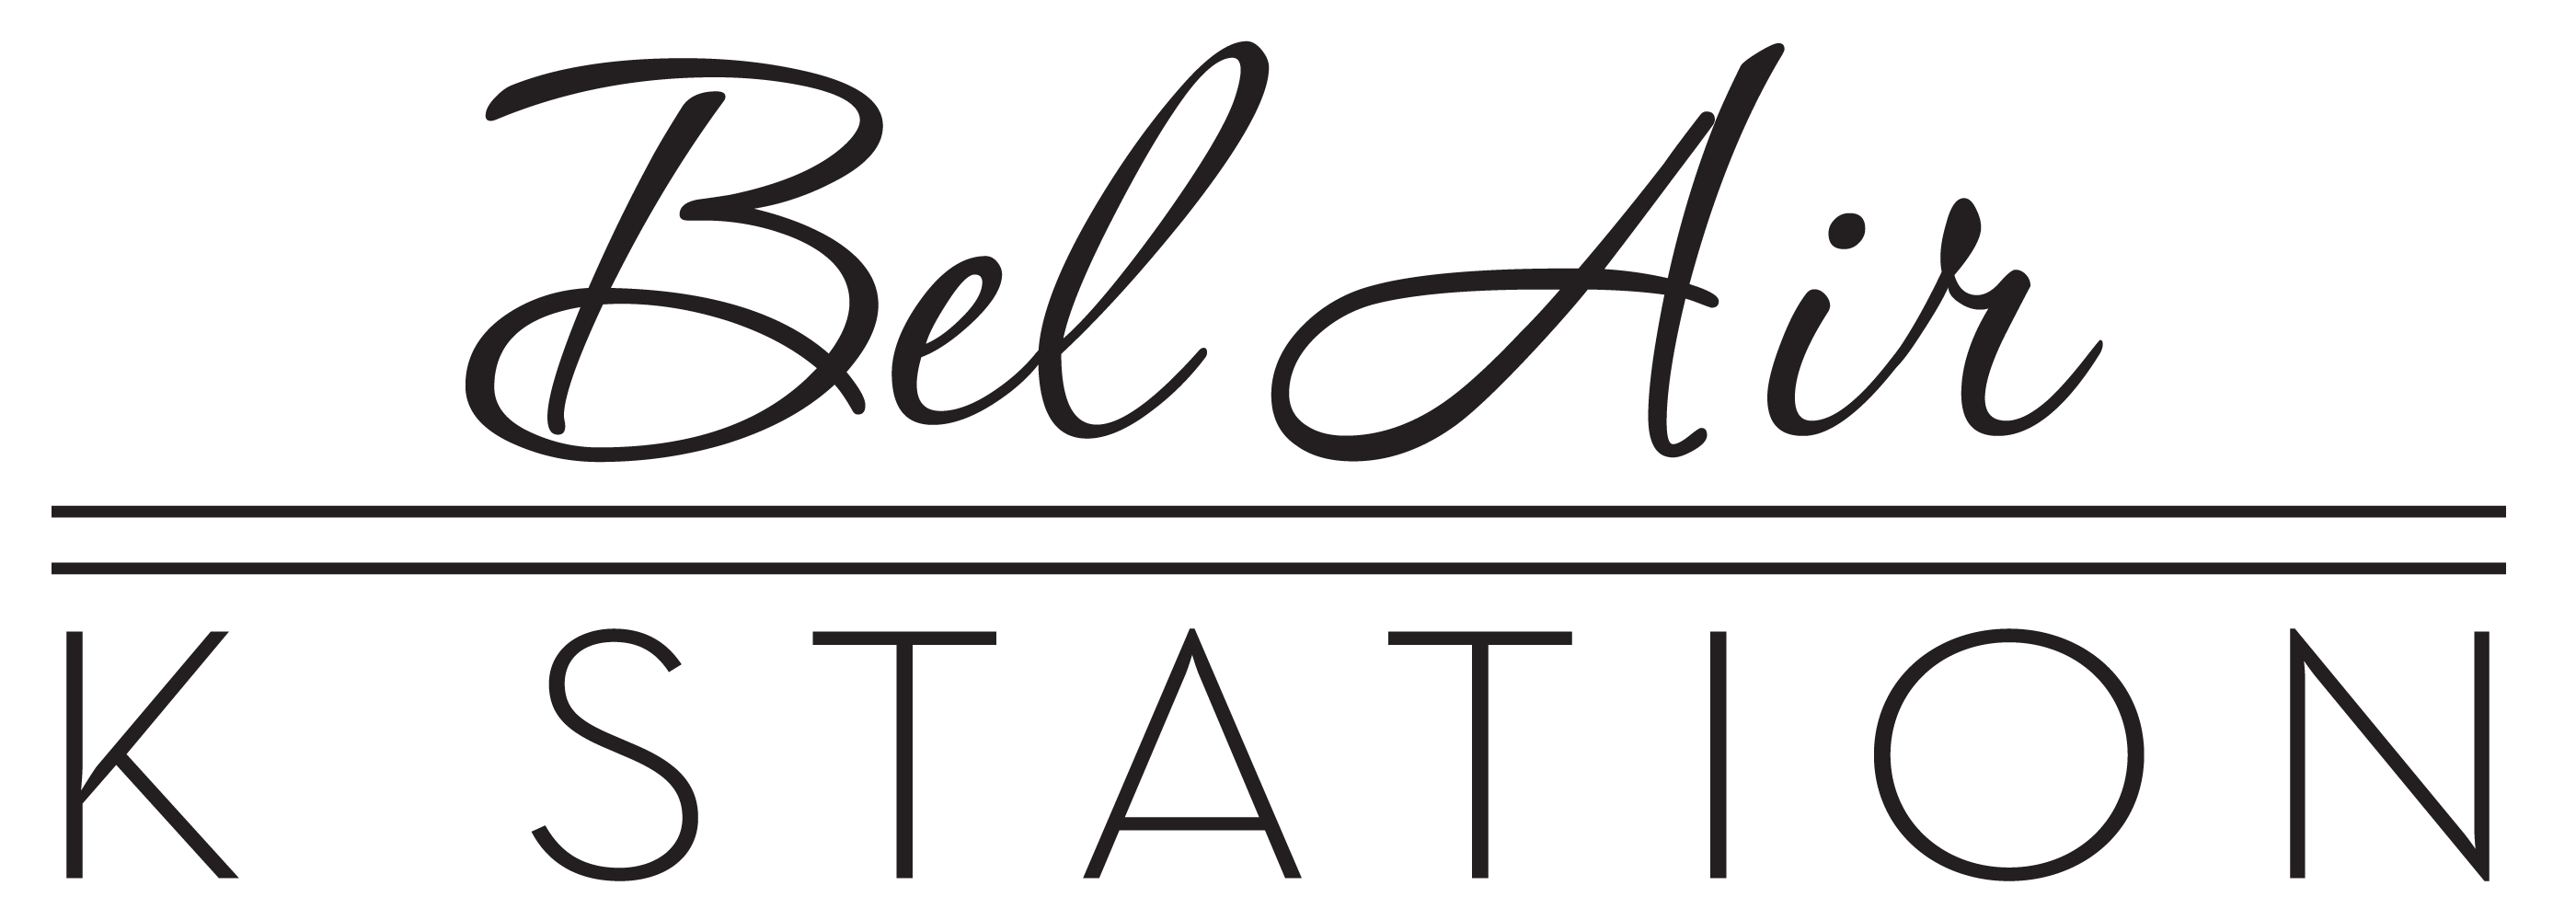 Bel Air K Station Logo